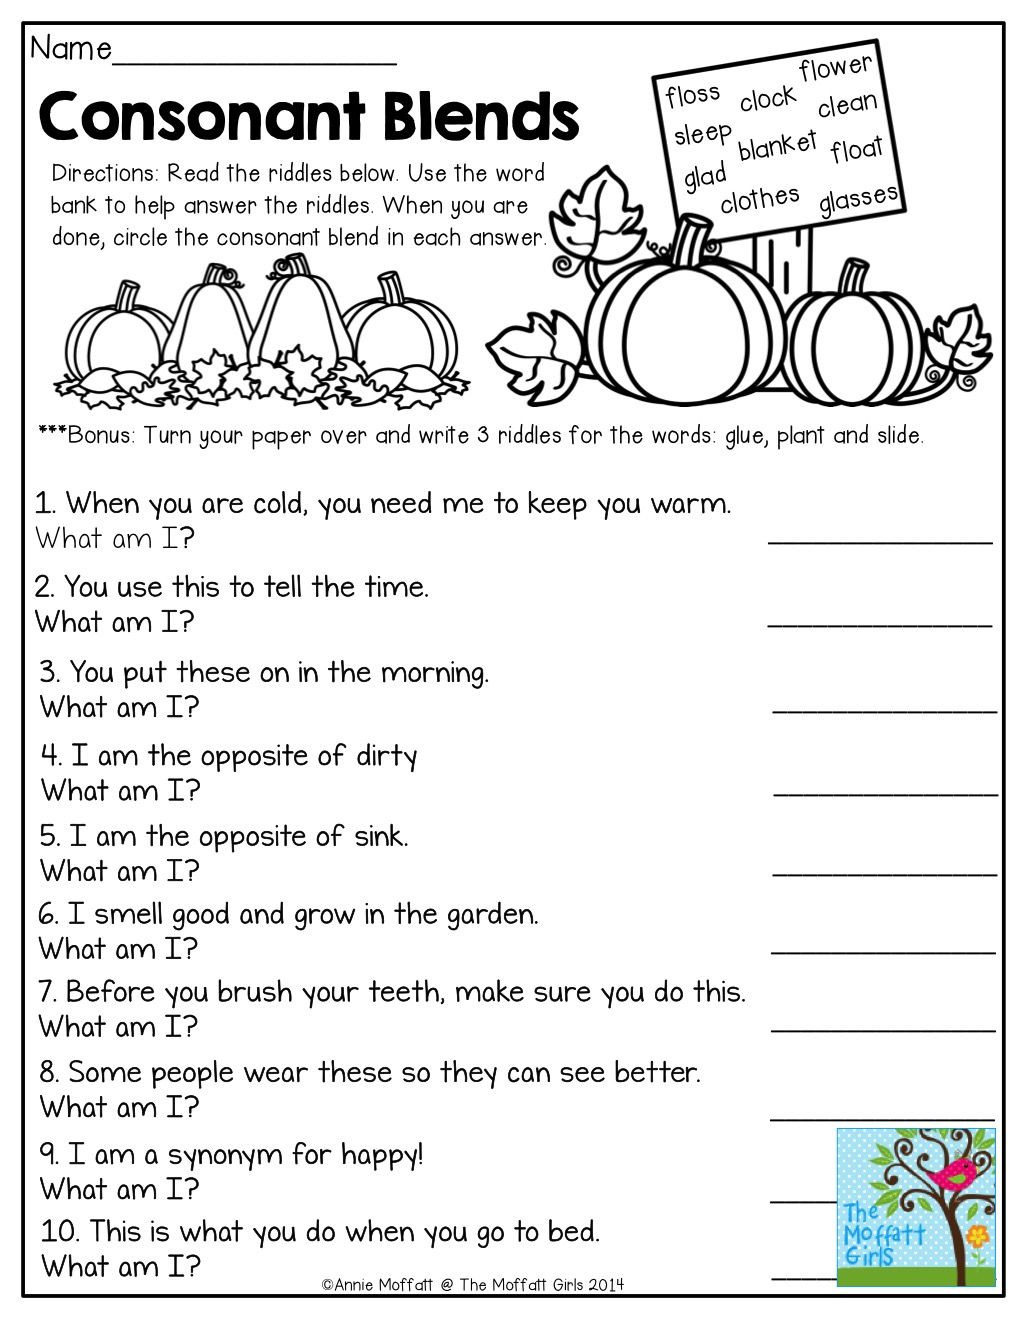 Phonic Worksheets 3rd Grade Consonant Blends Mystery Words Read the Clues and Write the